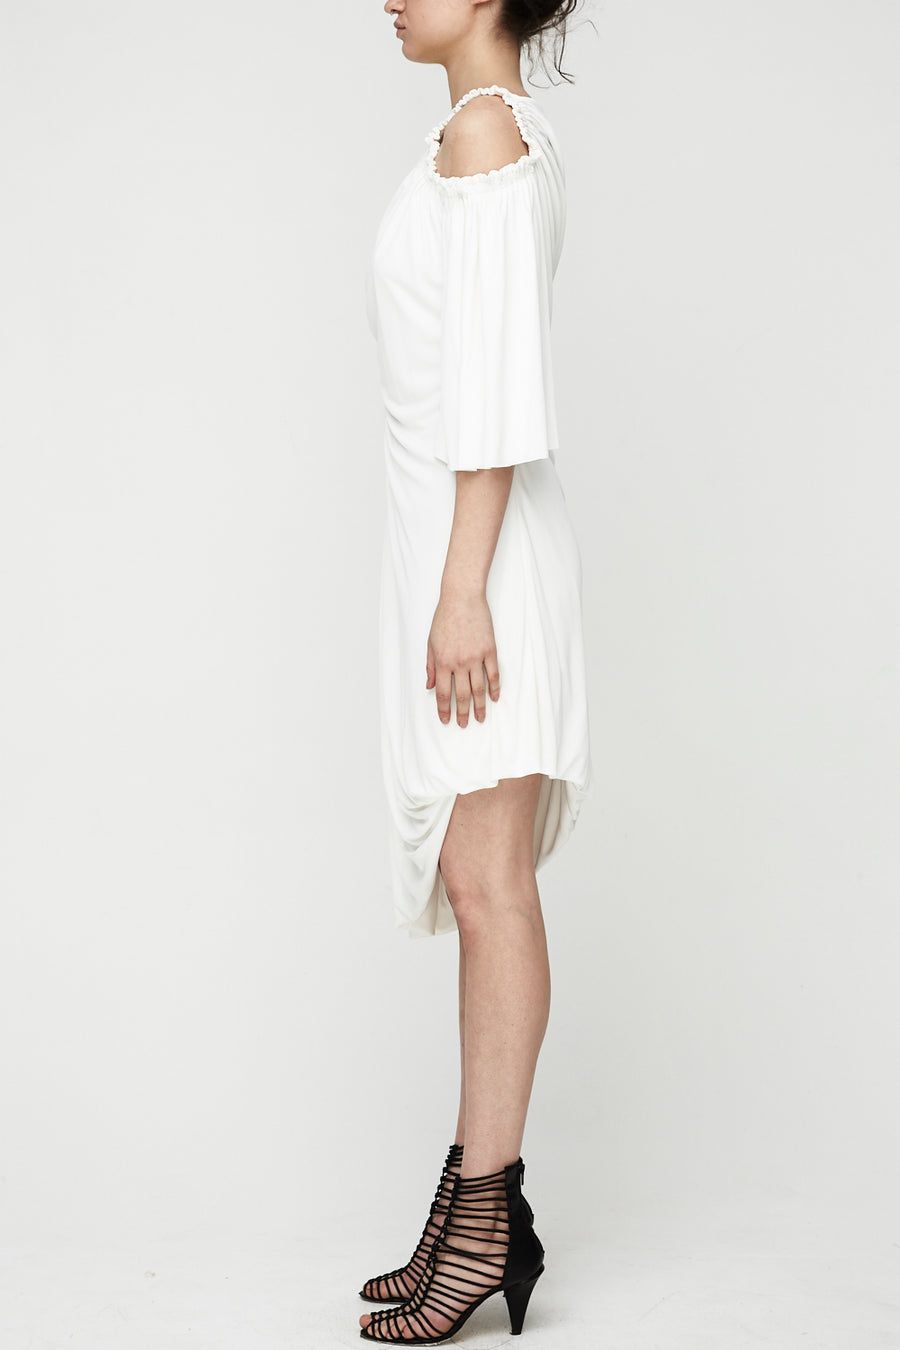 Cellular Drape Dress - White